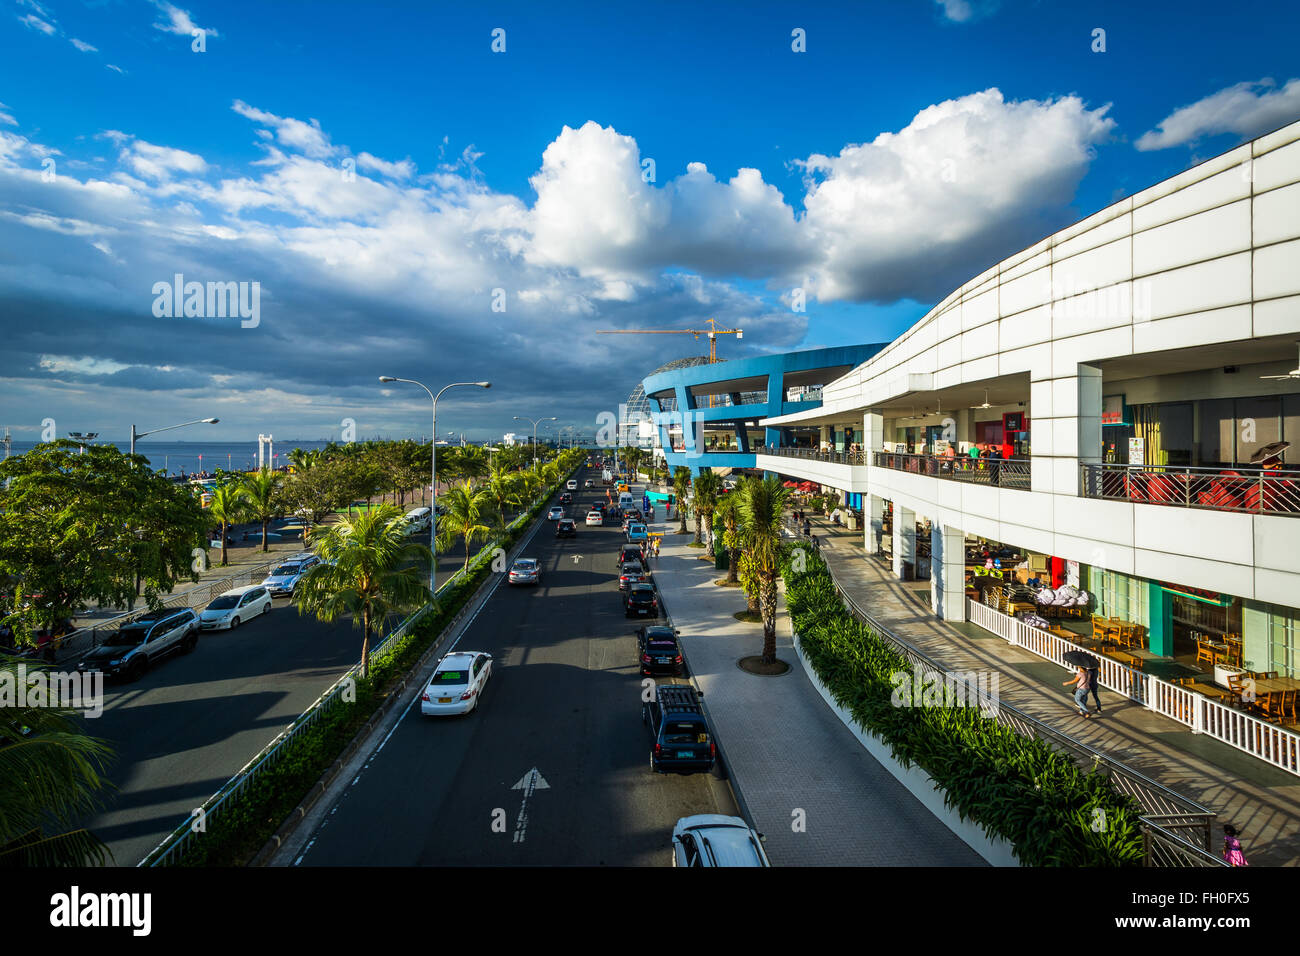 The exterior of the Mall of Asia and Seaside Boulevard, in Pasay, Metro Manila, The Philippines. - Stock Image